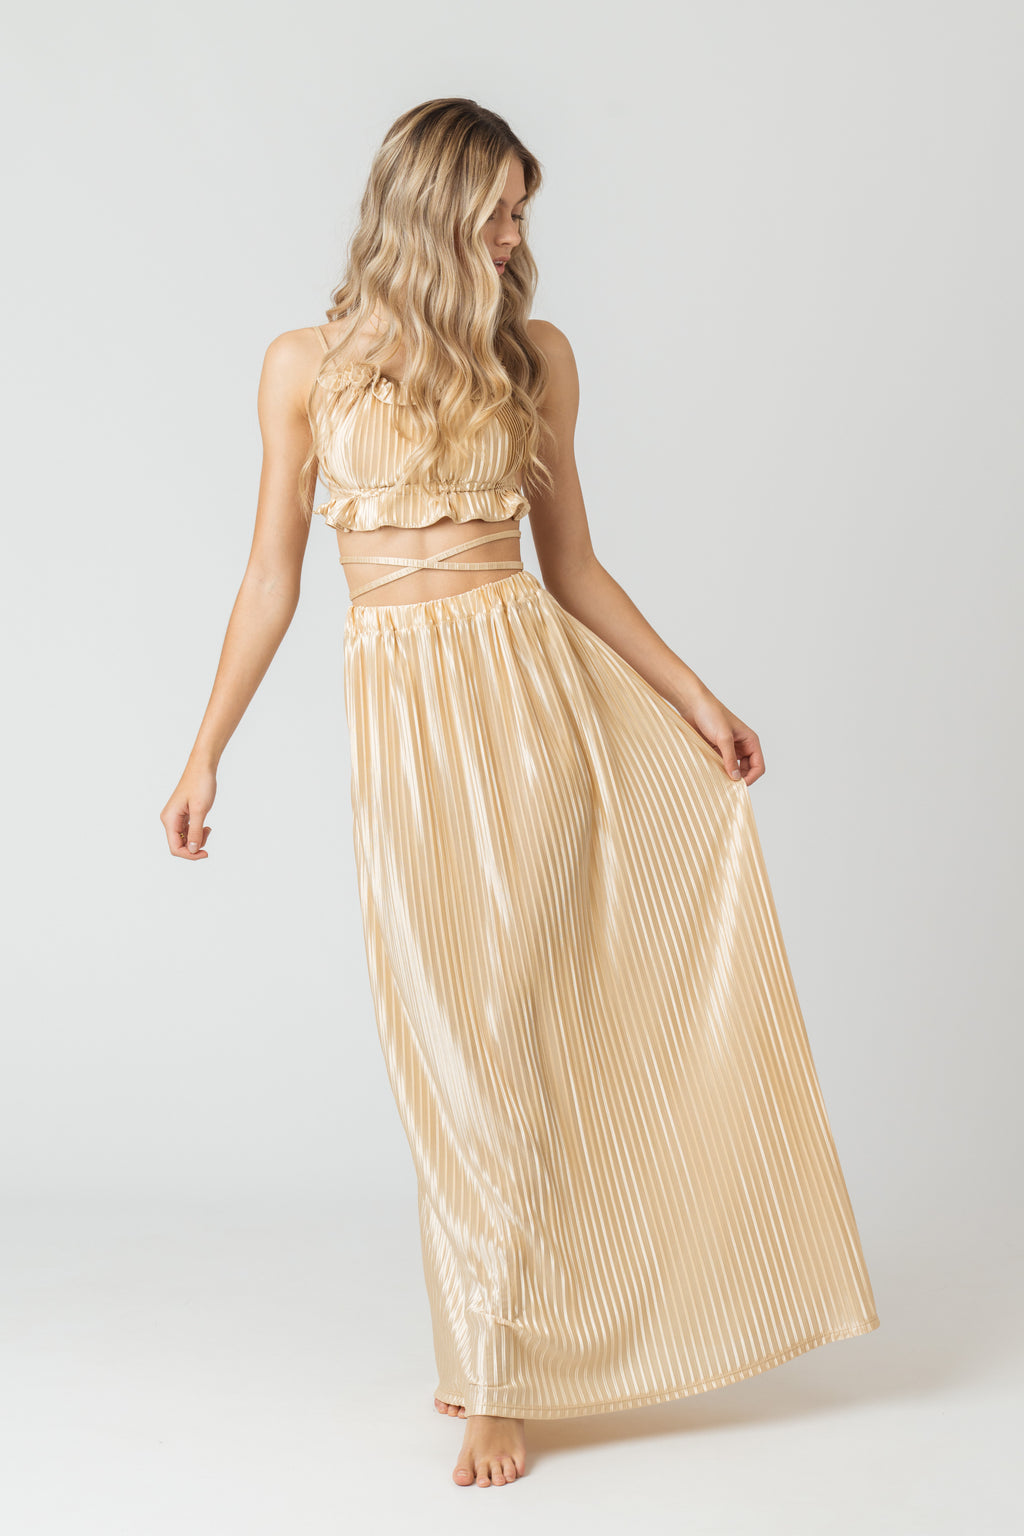 Mayan Maxi Skirt In Gold Satin